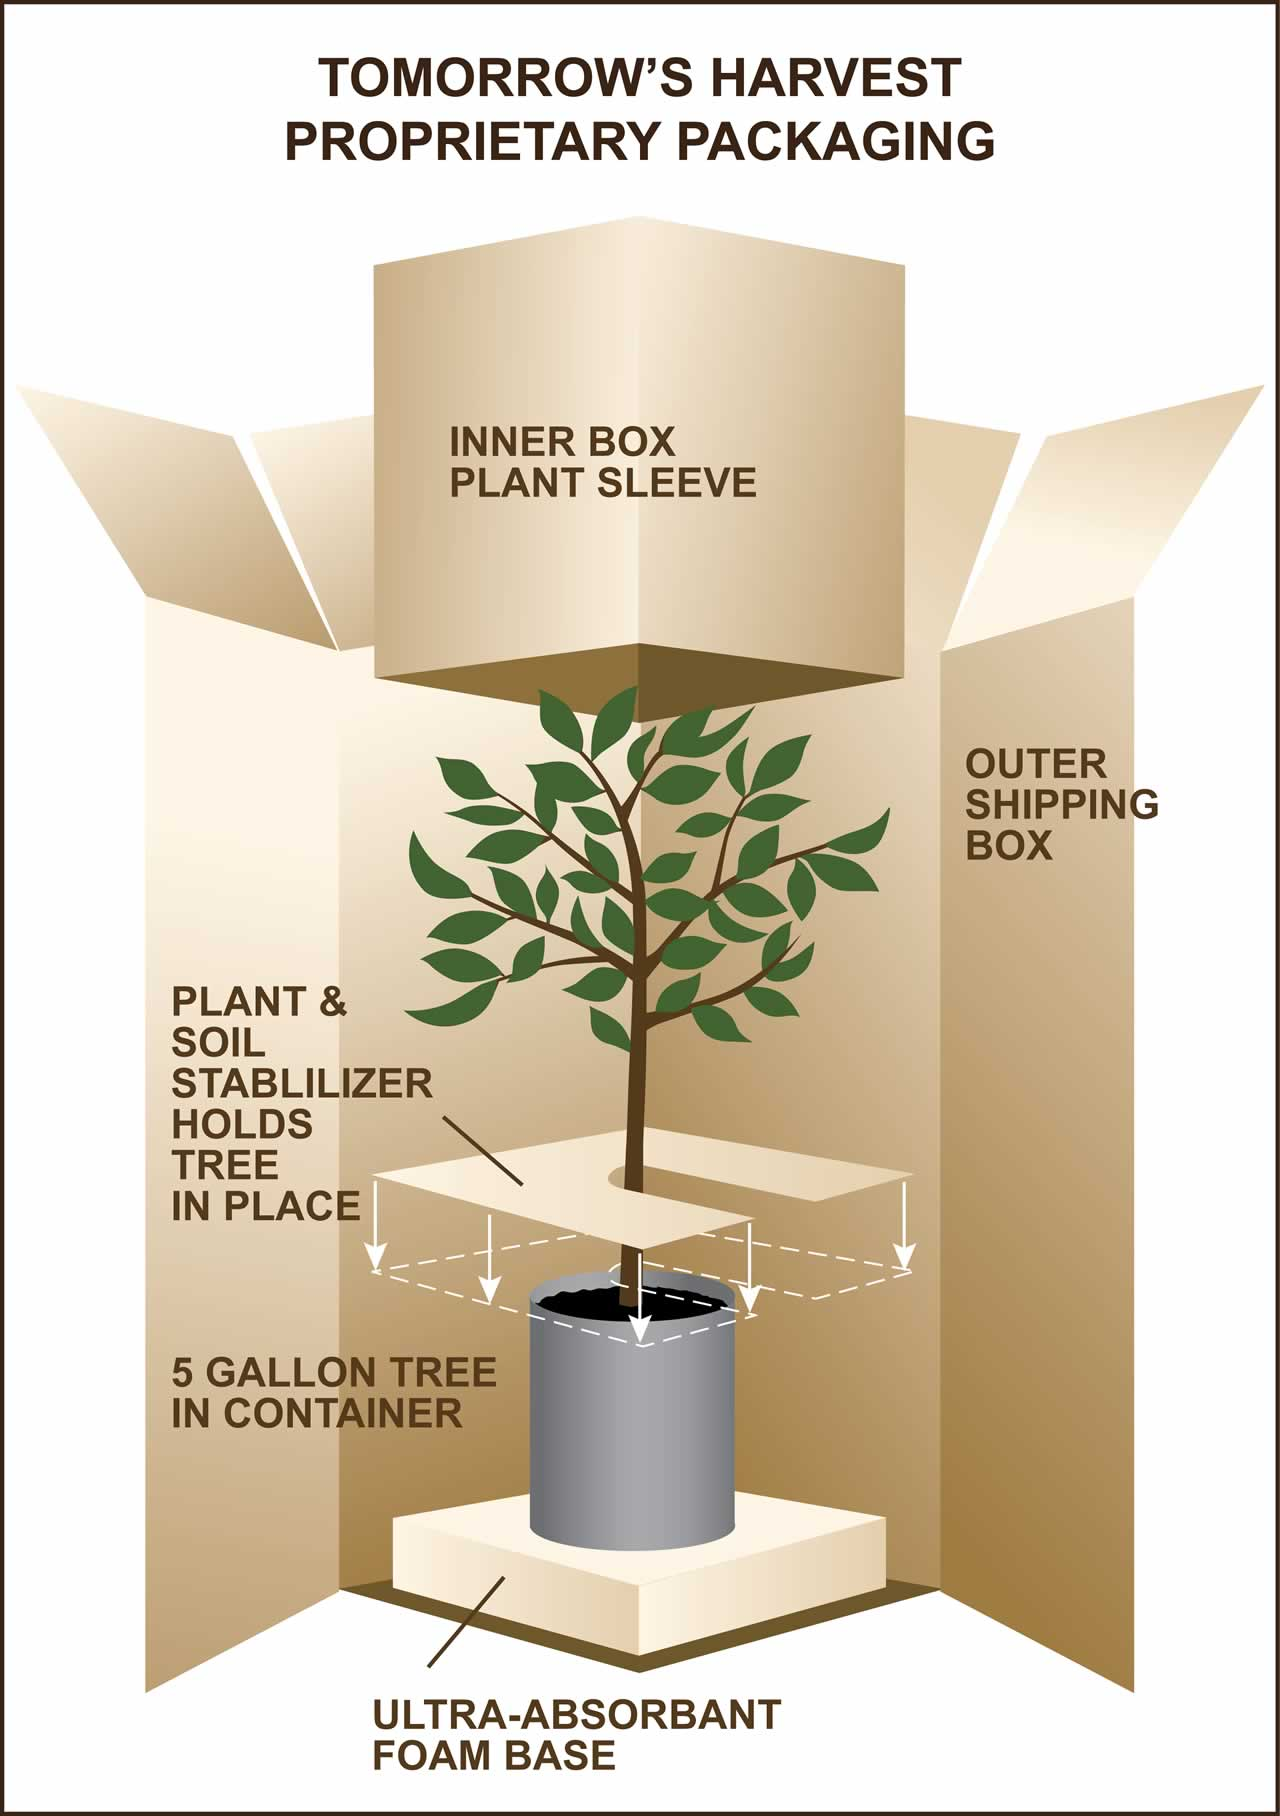 Diagram - Tomorrow's Harvest Proprietary Packaging and Shipping Container